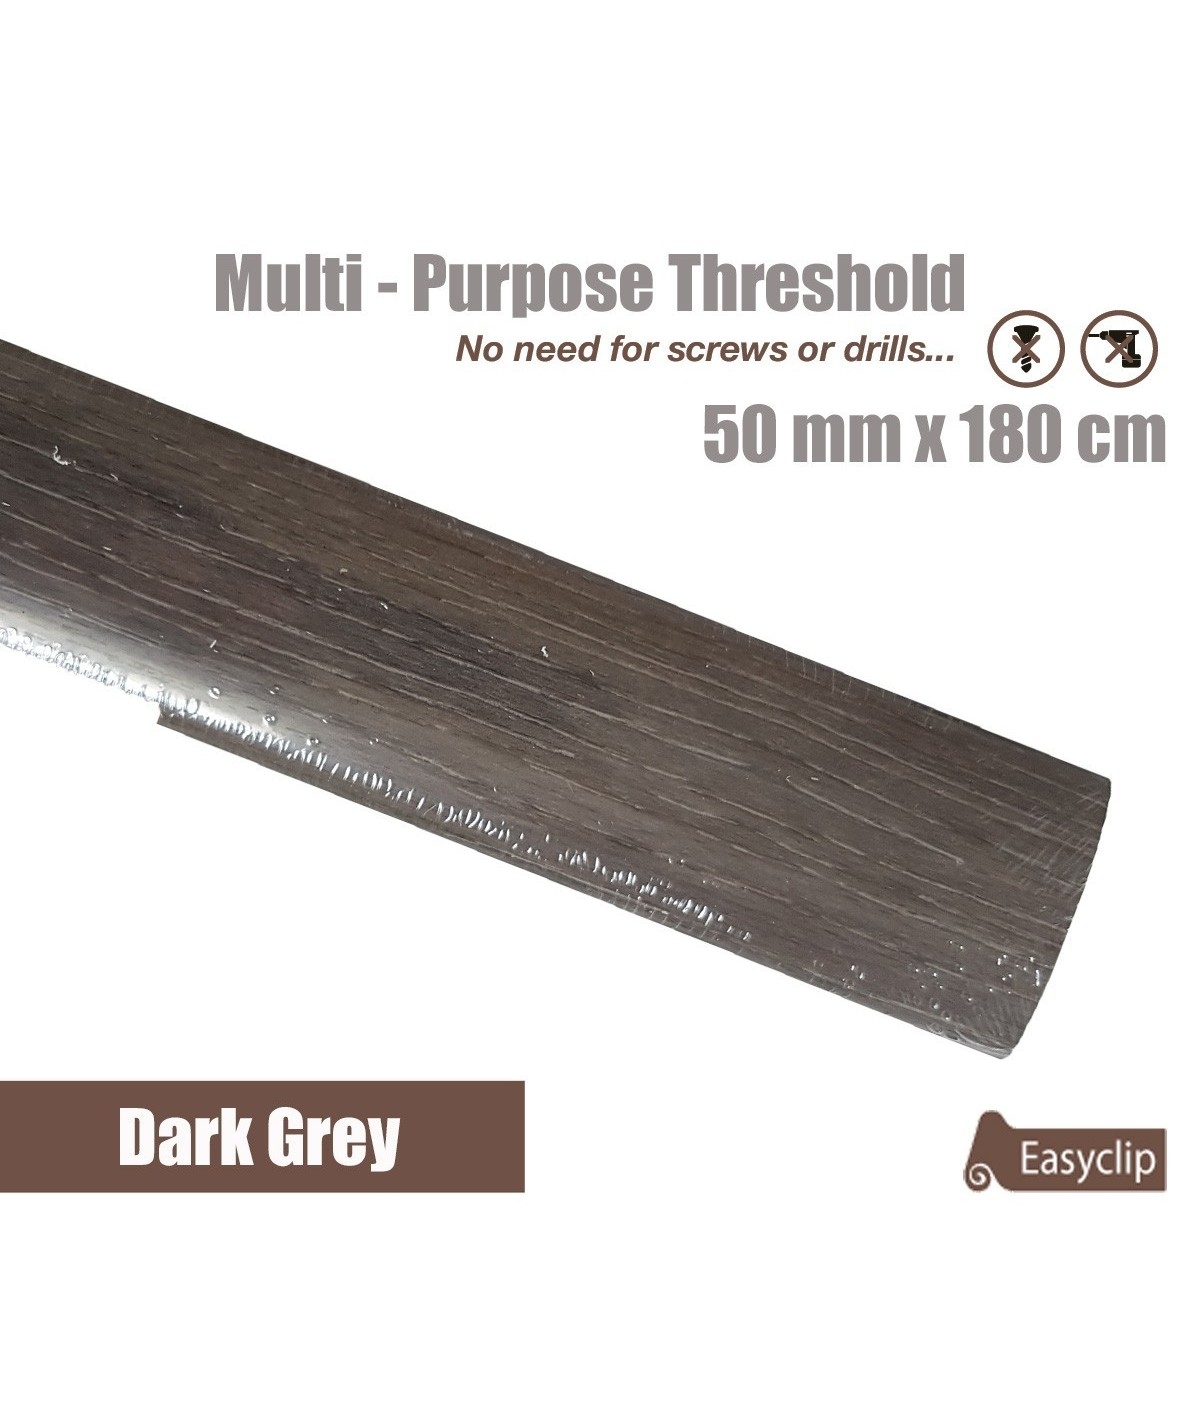 Dark Grey Laminated Transition Threshold Strip 50mm x180cm Multi-Height/Pivots